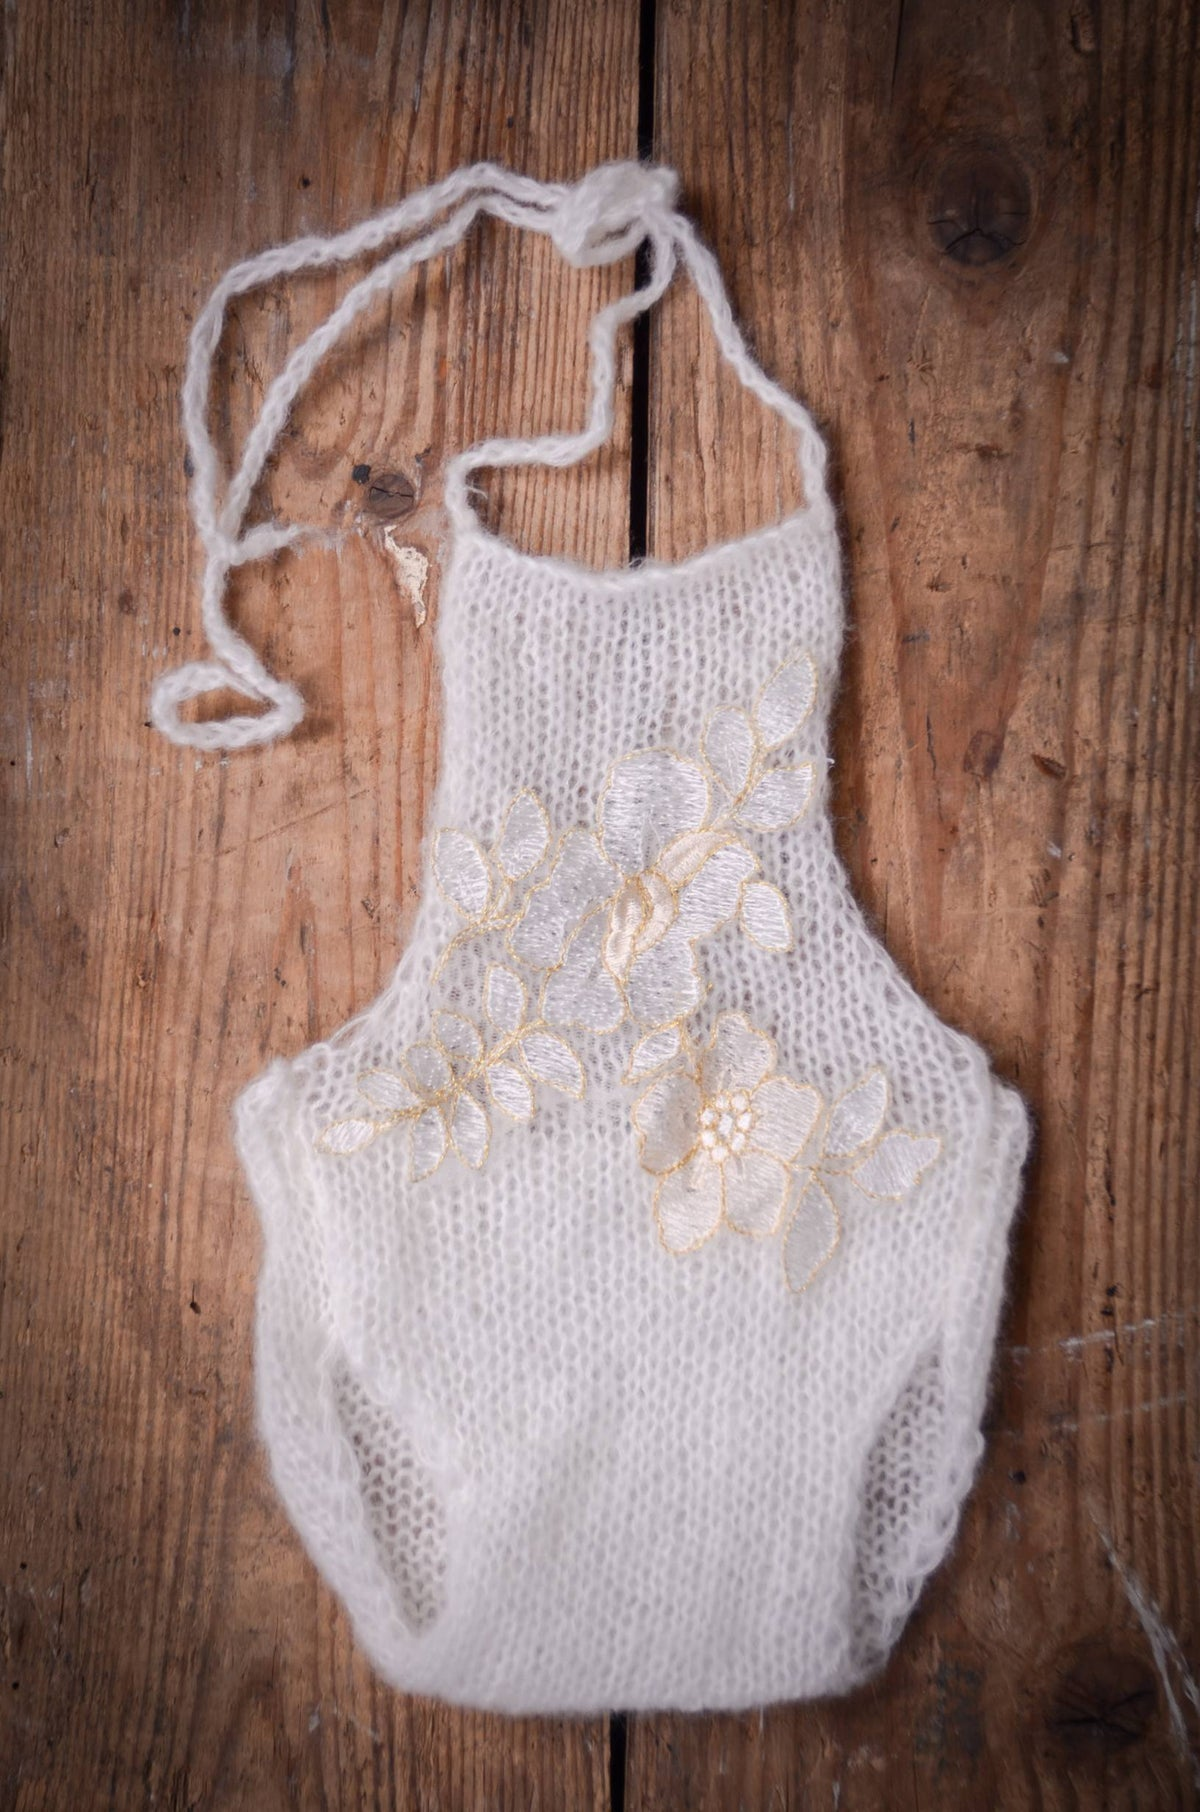 Mohair Knit Romper with Flowers - Milk White-Newborn Photography Props